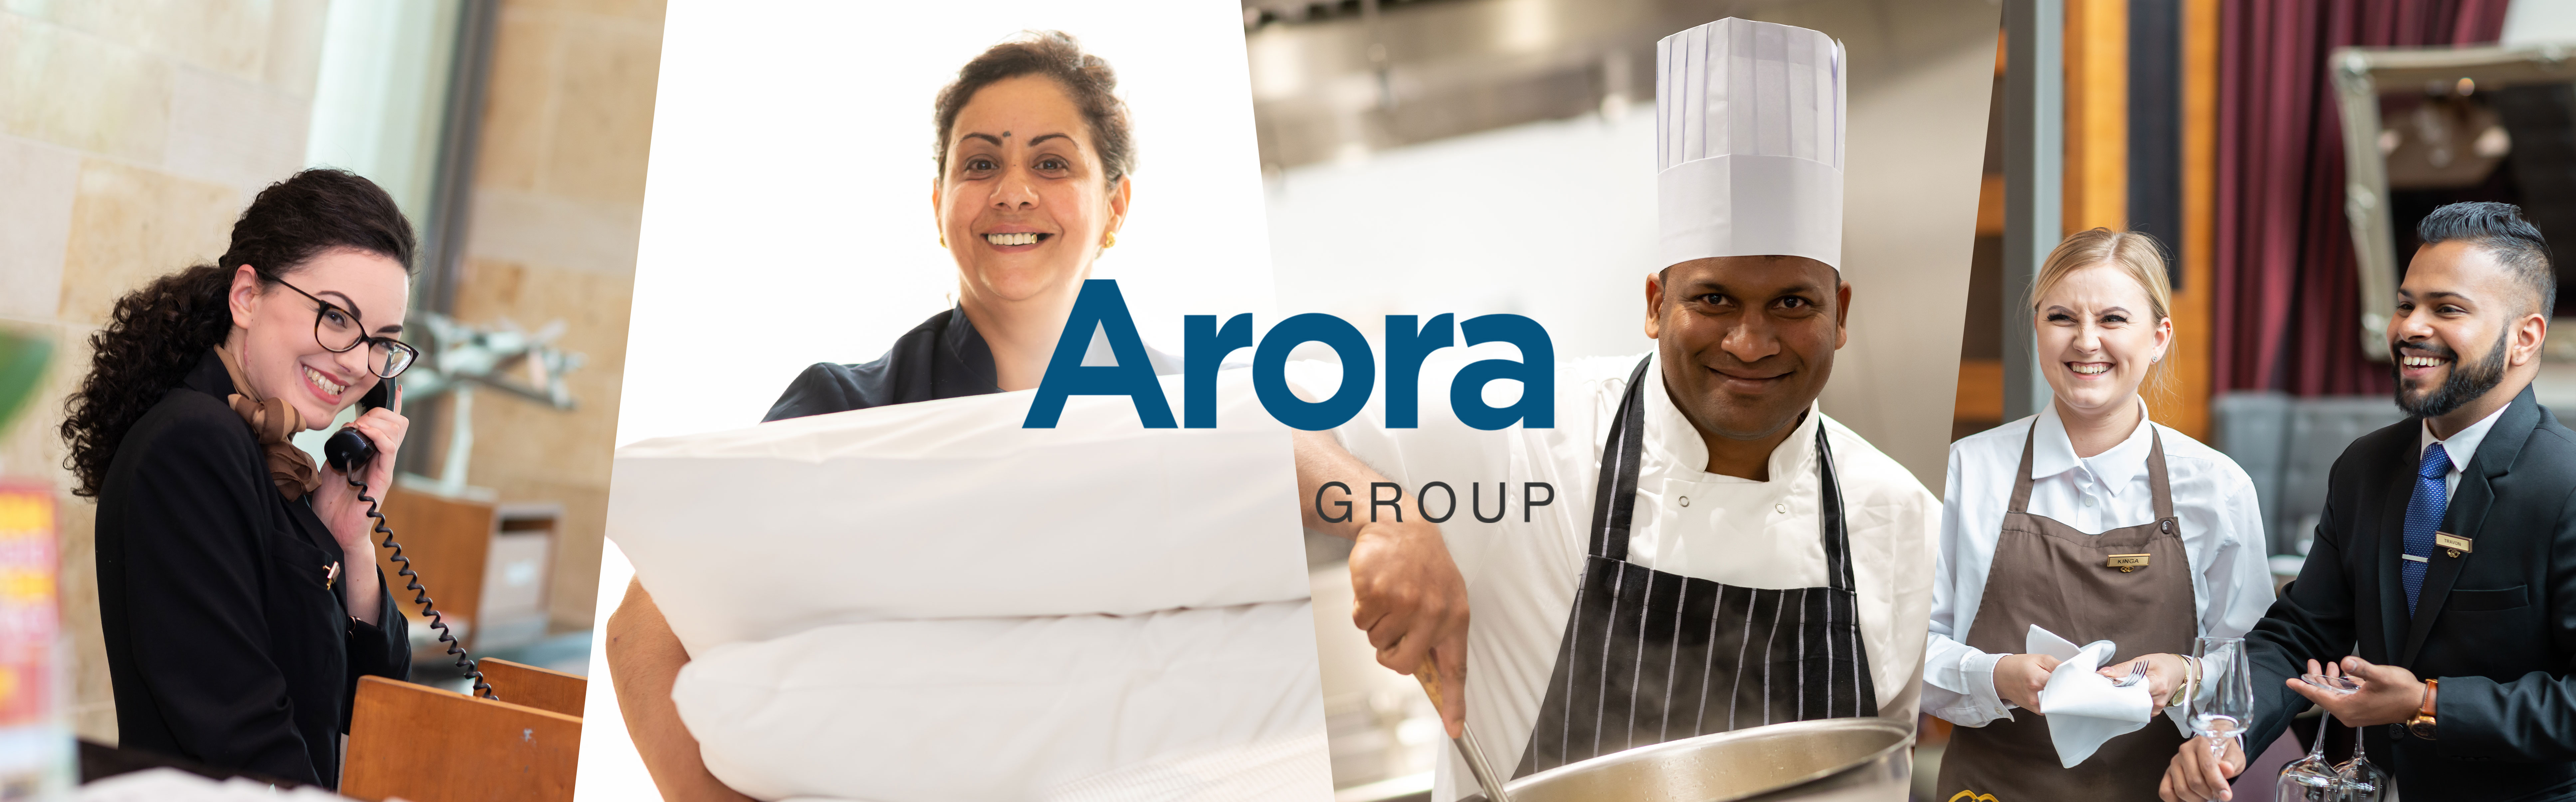 The Arora Group